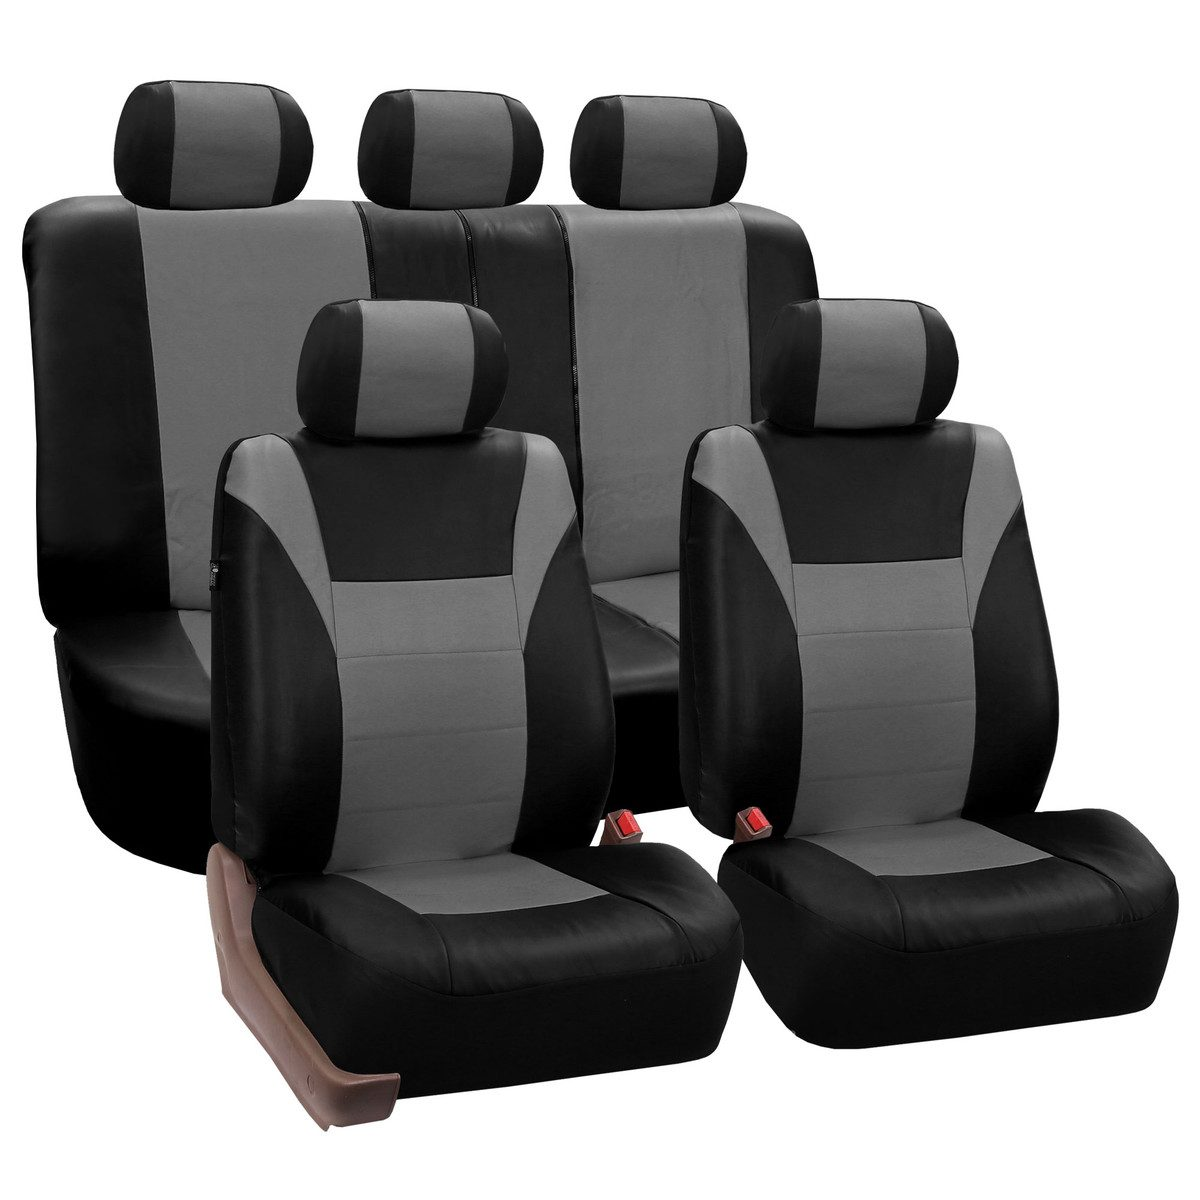 88-PU003115_gray seat cover 1